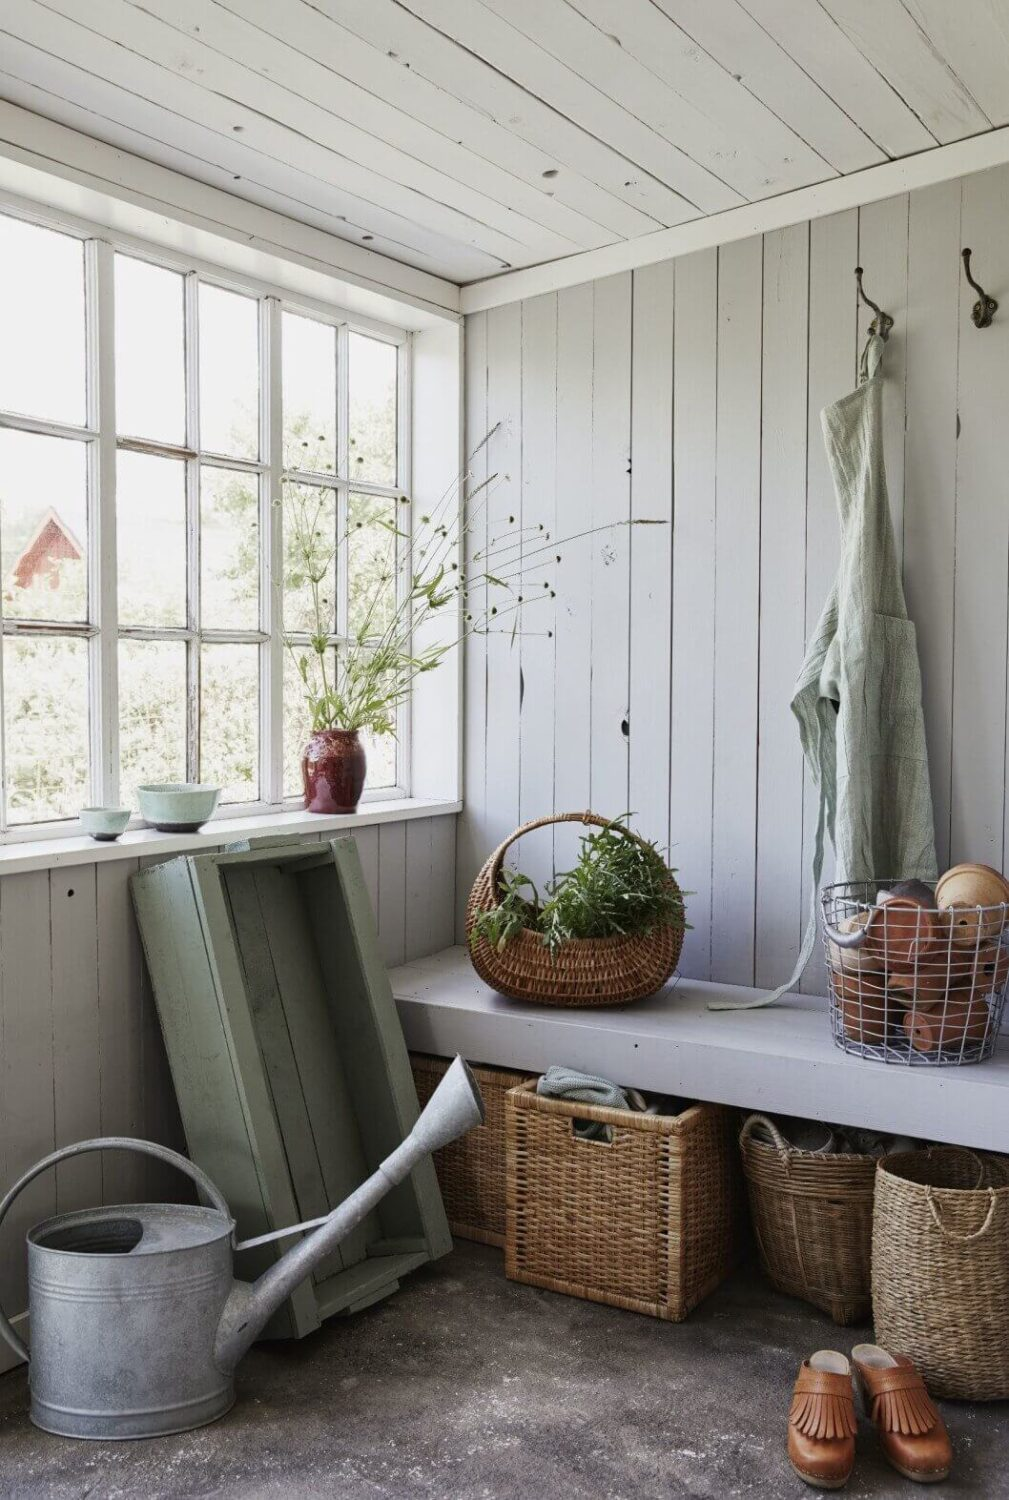 wooden-bench-baskets-farmhouse-cottage-sweden-recycled-nordroom